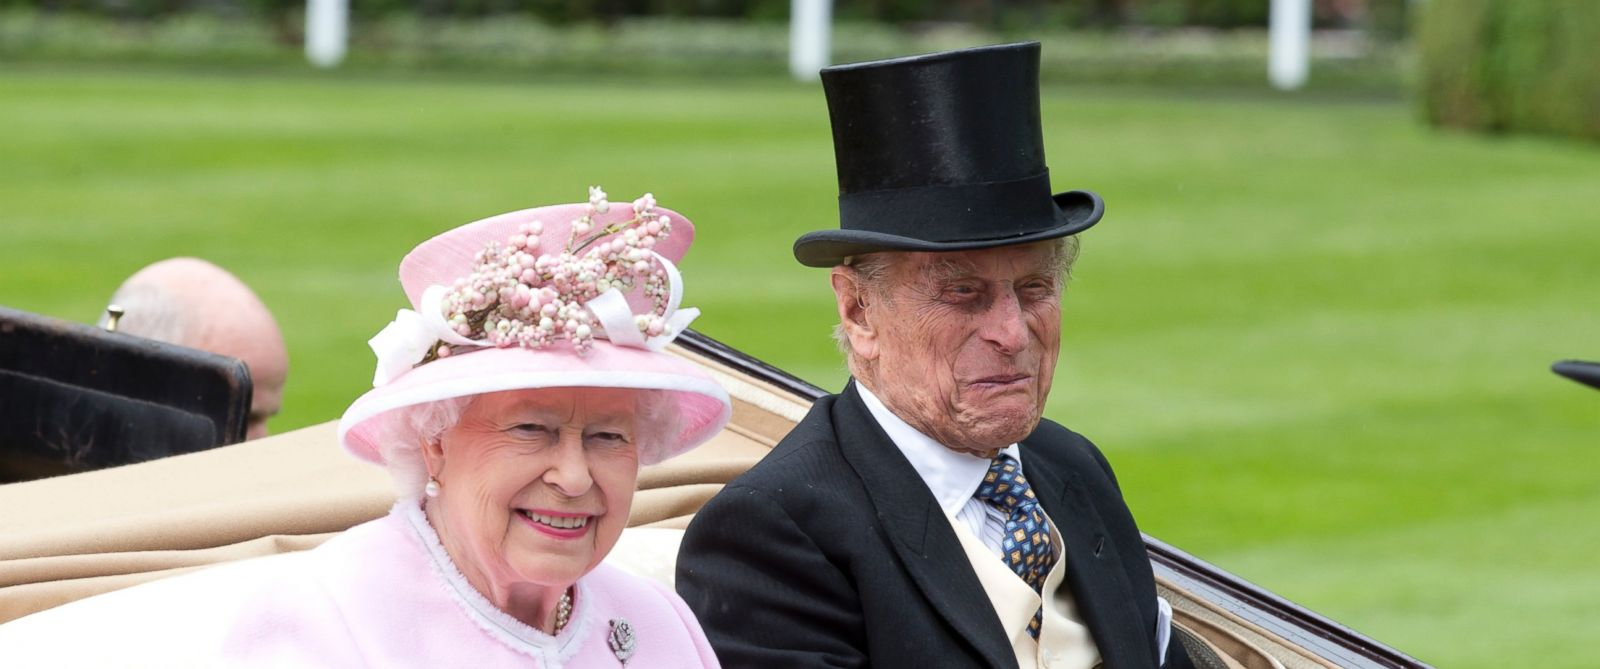 Prince Philip to step down from public duties in fall